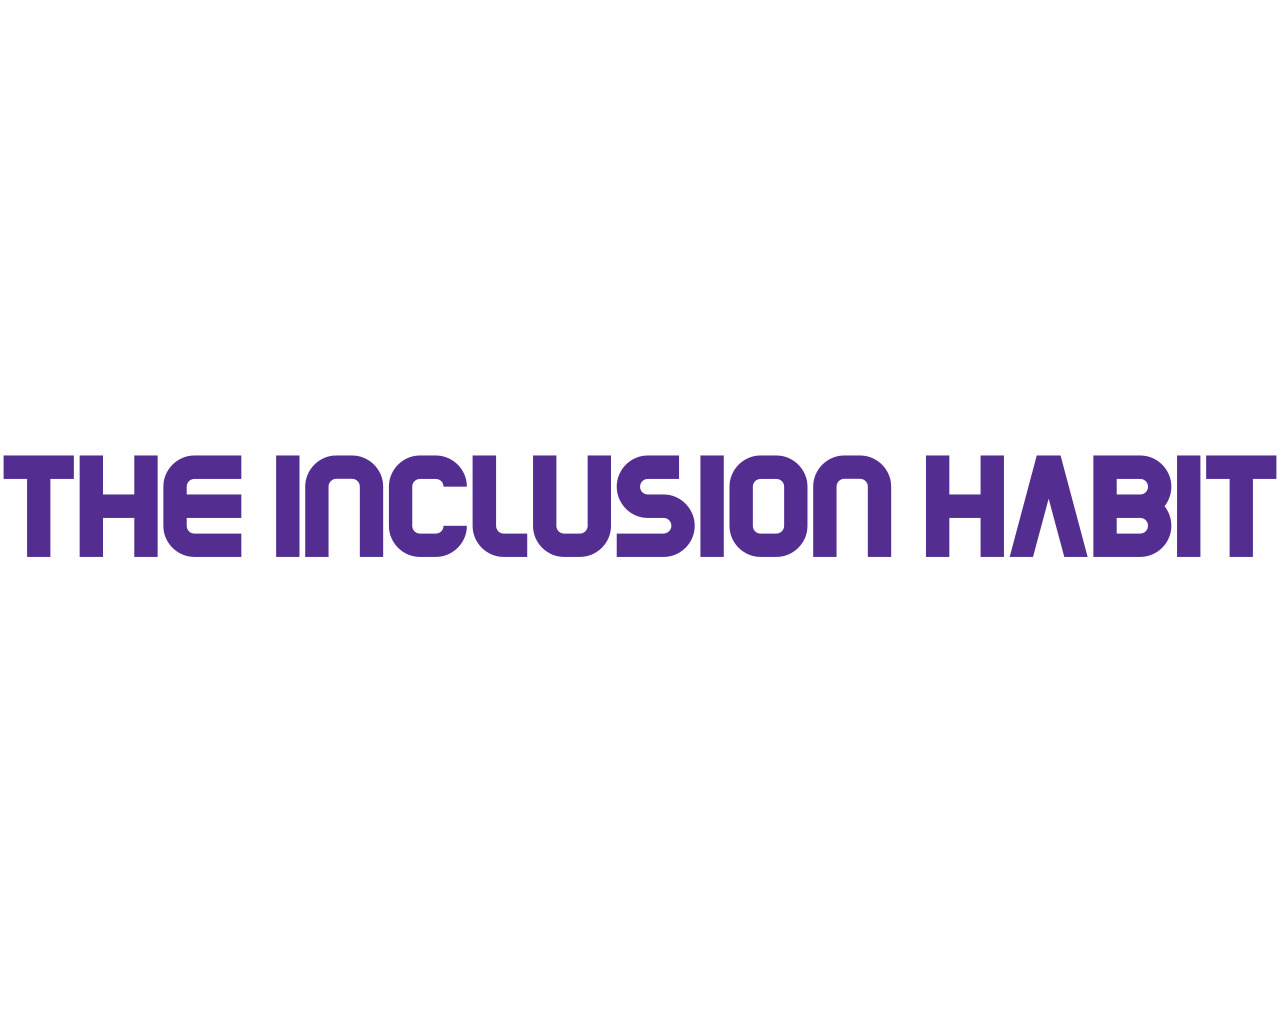 Behavioral Economist Partners with ProHabits to Release 'The Inclusion Habit': An Evidence-Based Solution For Inclusive Workplaces